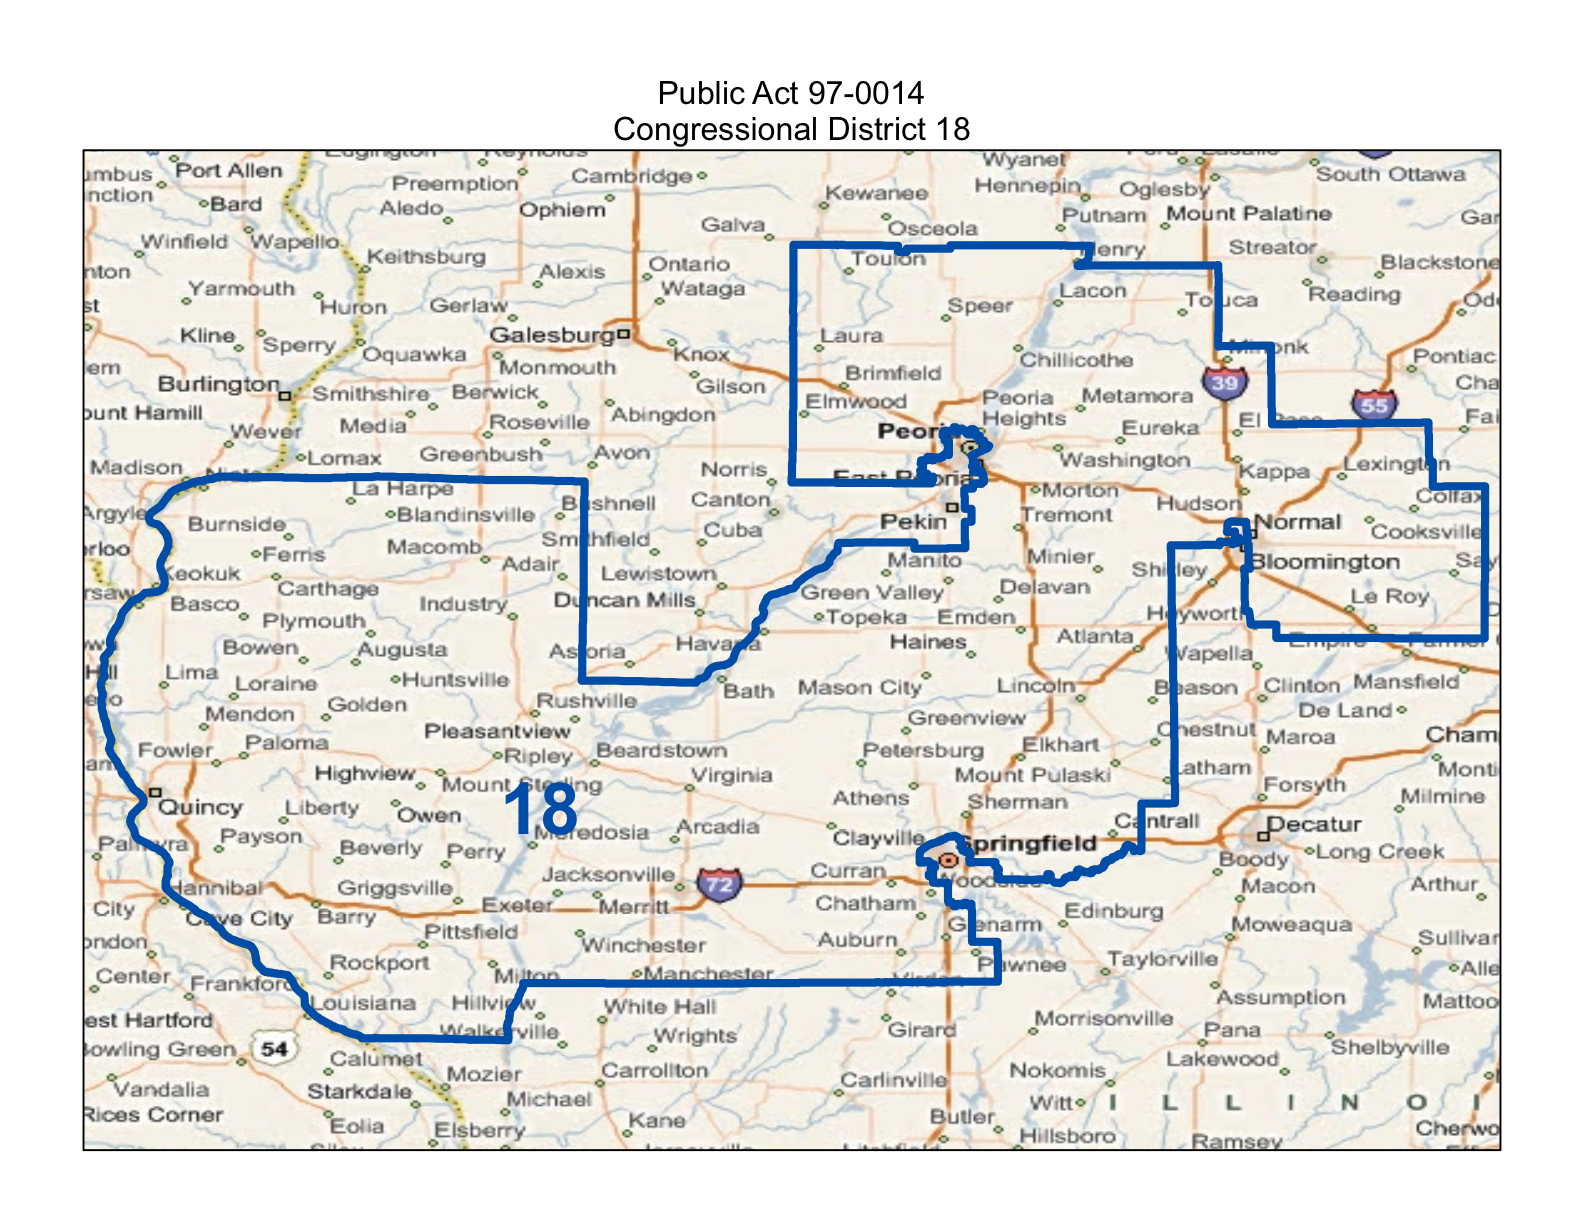 Will County Politics Maps Of Illinois Congressional Districts 2014